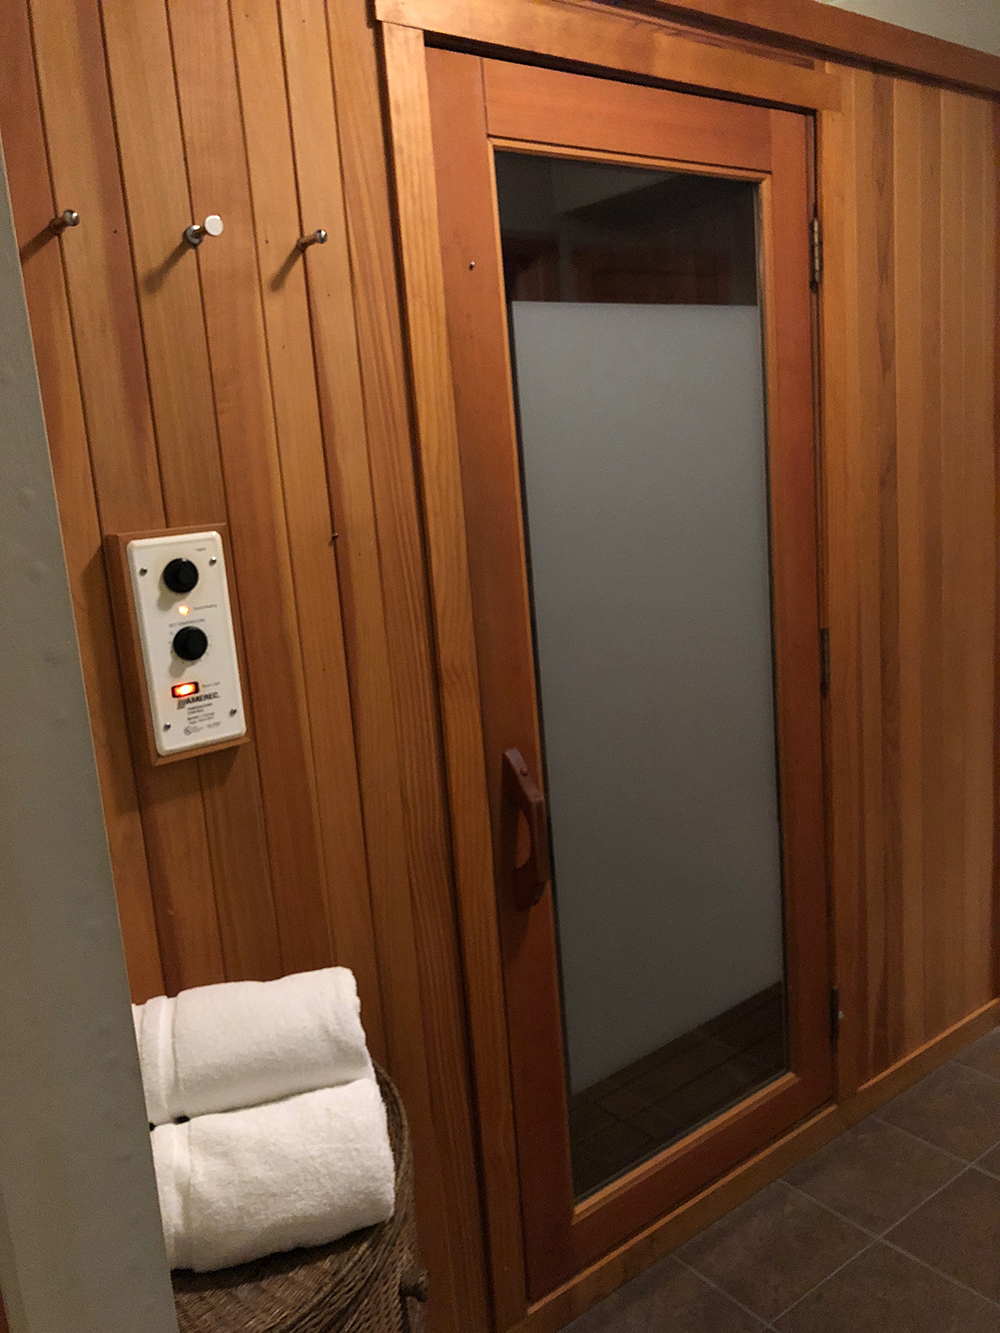 The dry sauna is another amenity offered to spa guests.